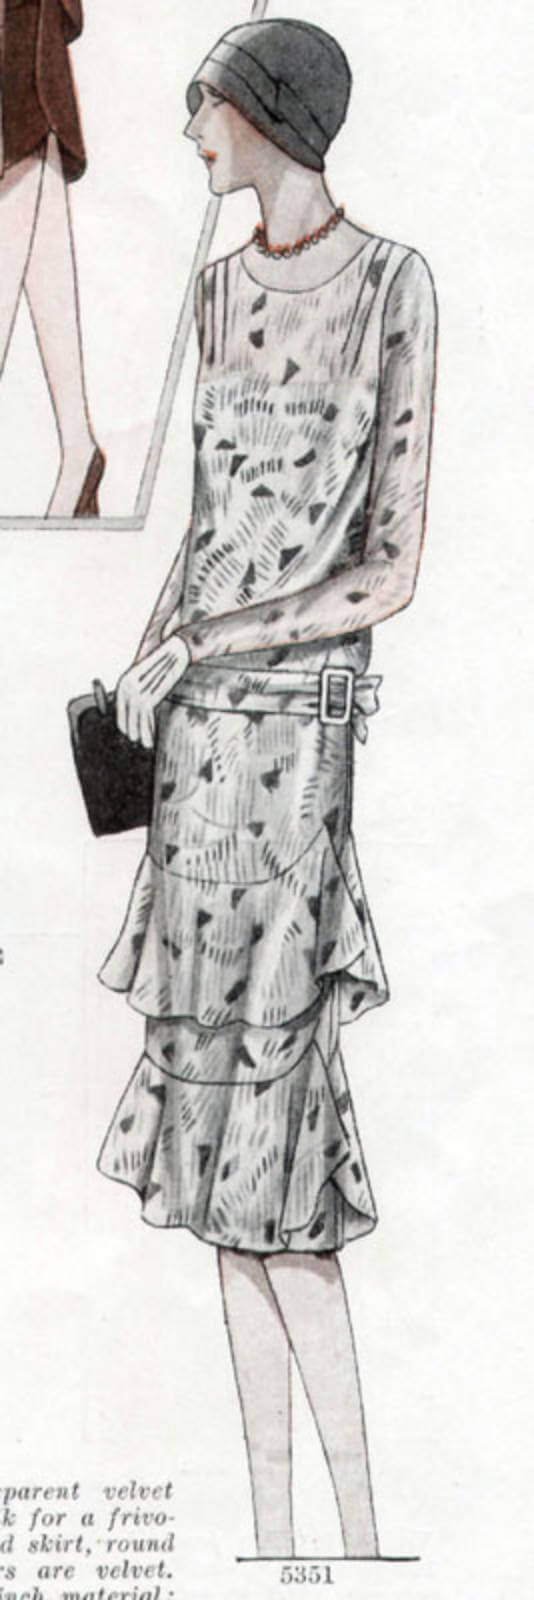 The 1920s were marked by accessorization of women!